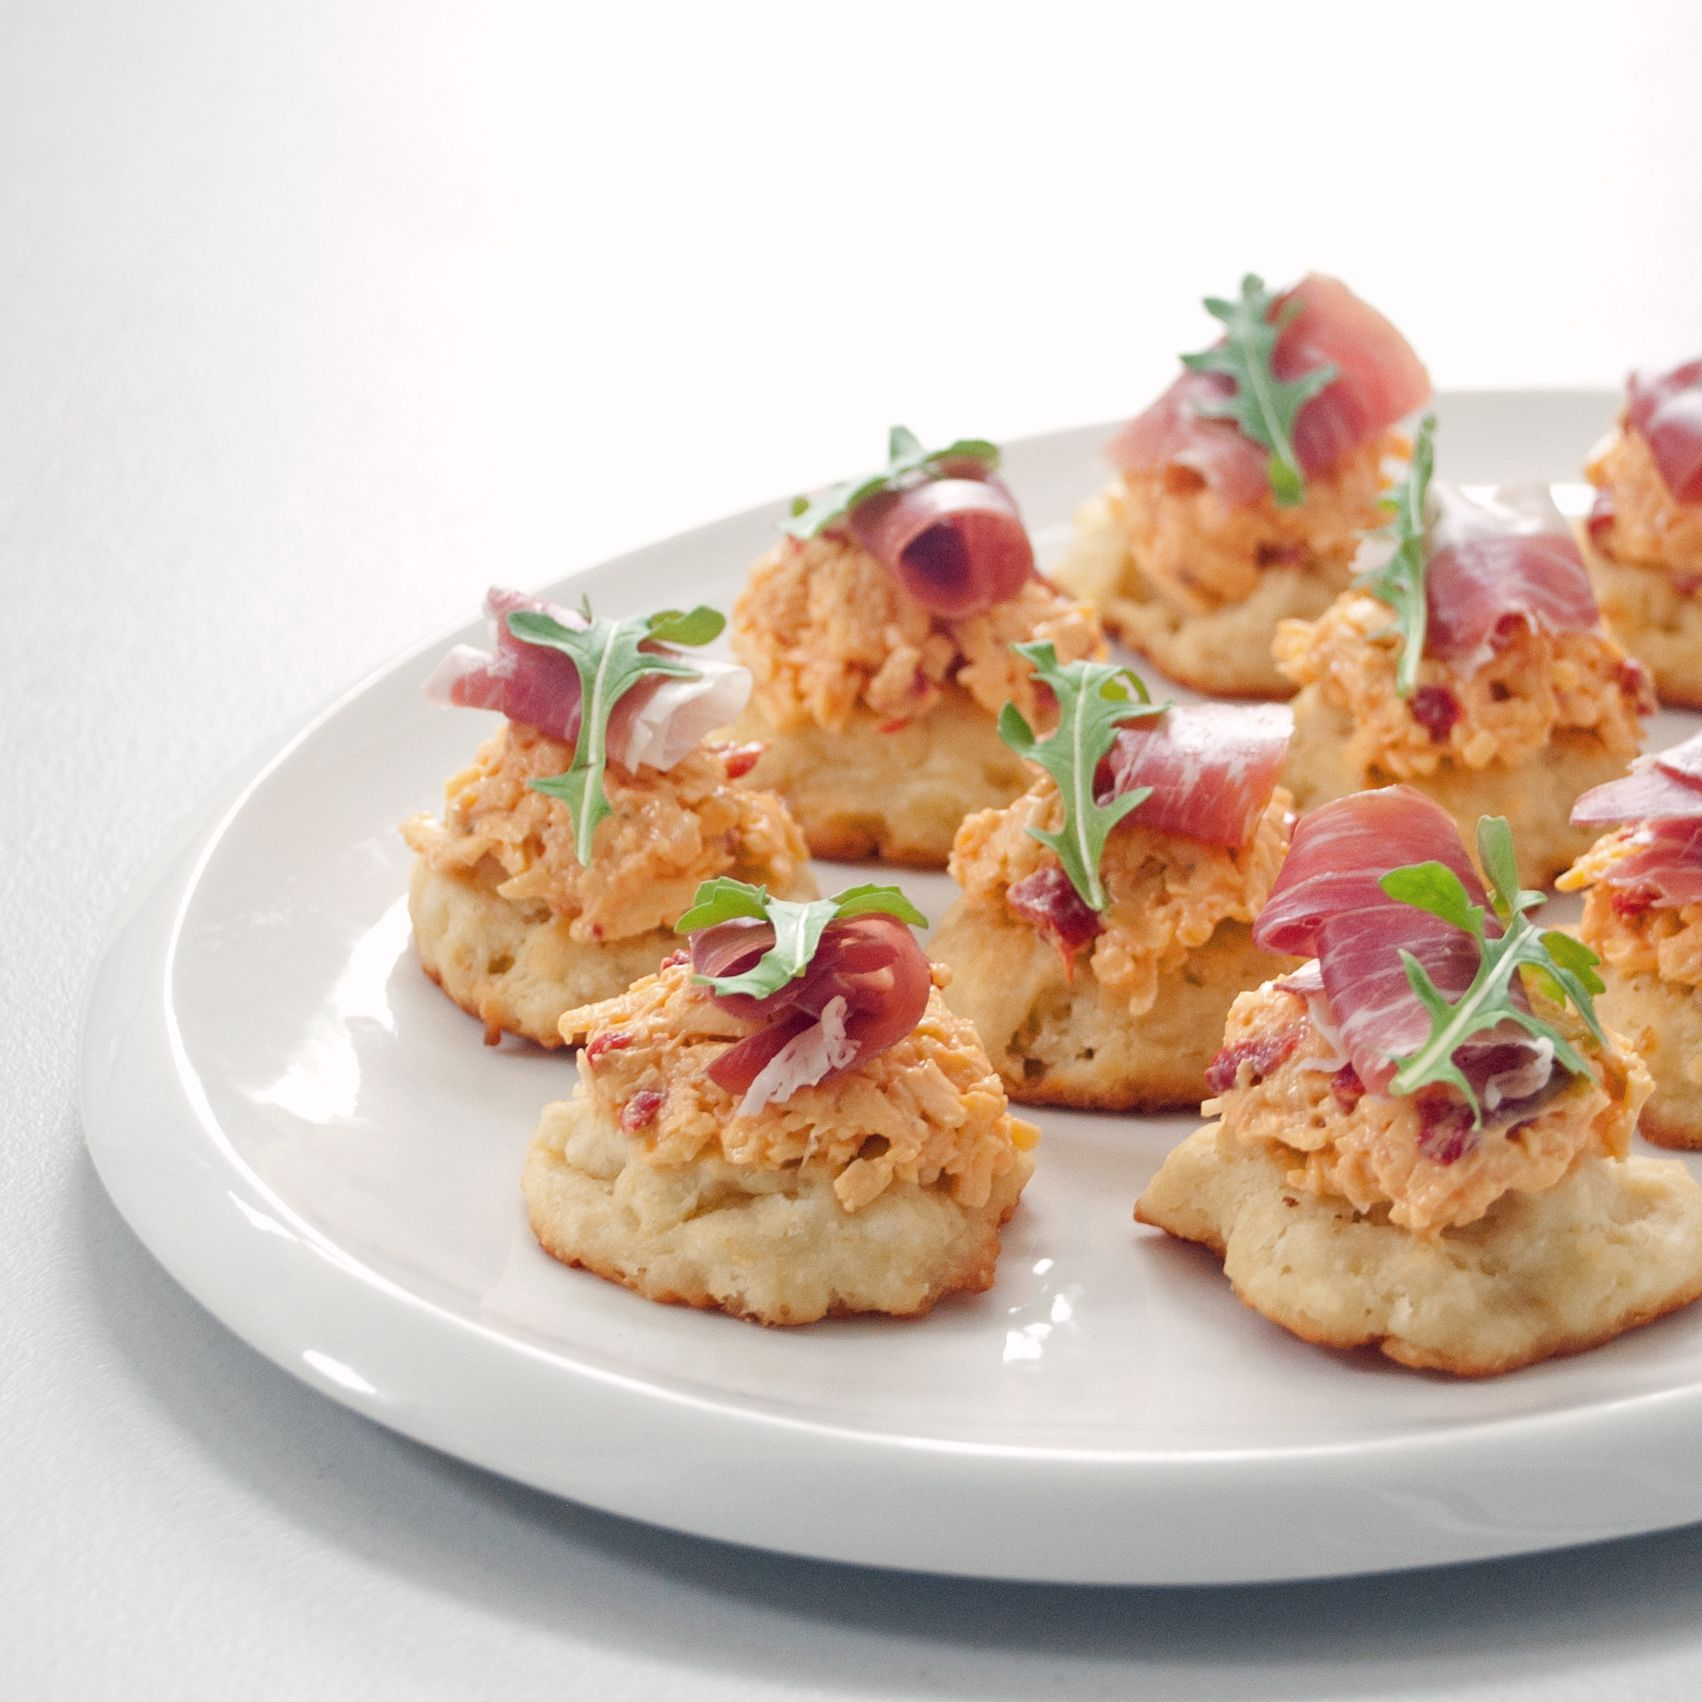 Pimiento Cheese And Ham Scramble: Southern Stunners: Pimento Cheese And Prosciutto Biscuits